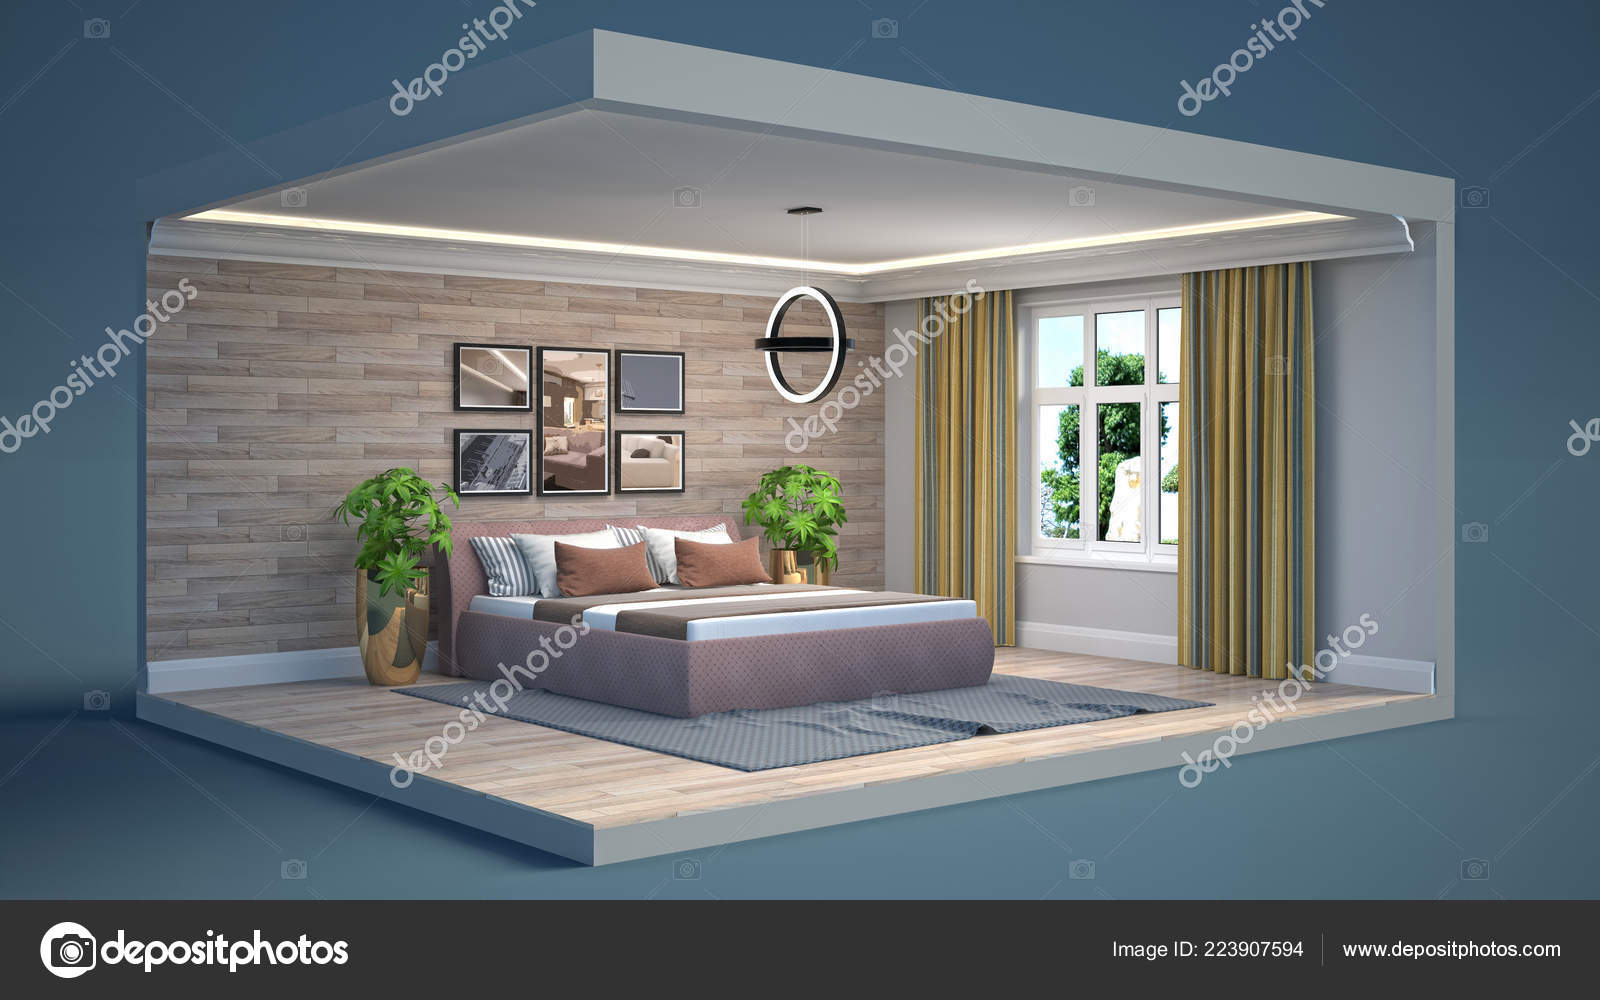 Interior Of The Bedroom In A Box. 3D Illustration U2014 Photo By StockerNumber2